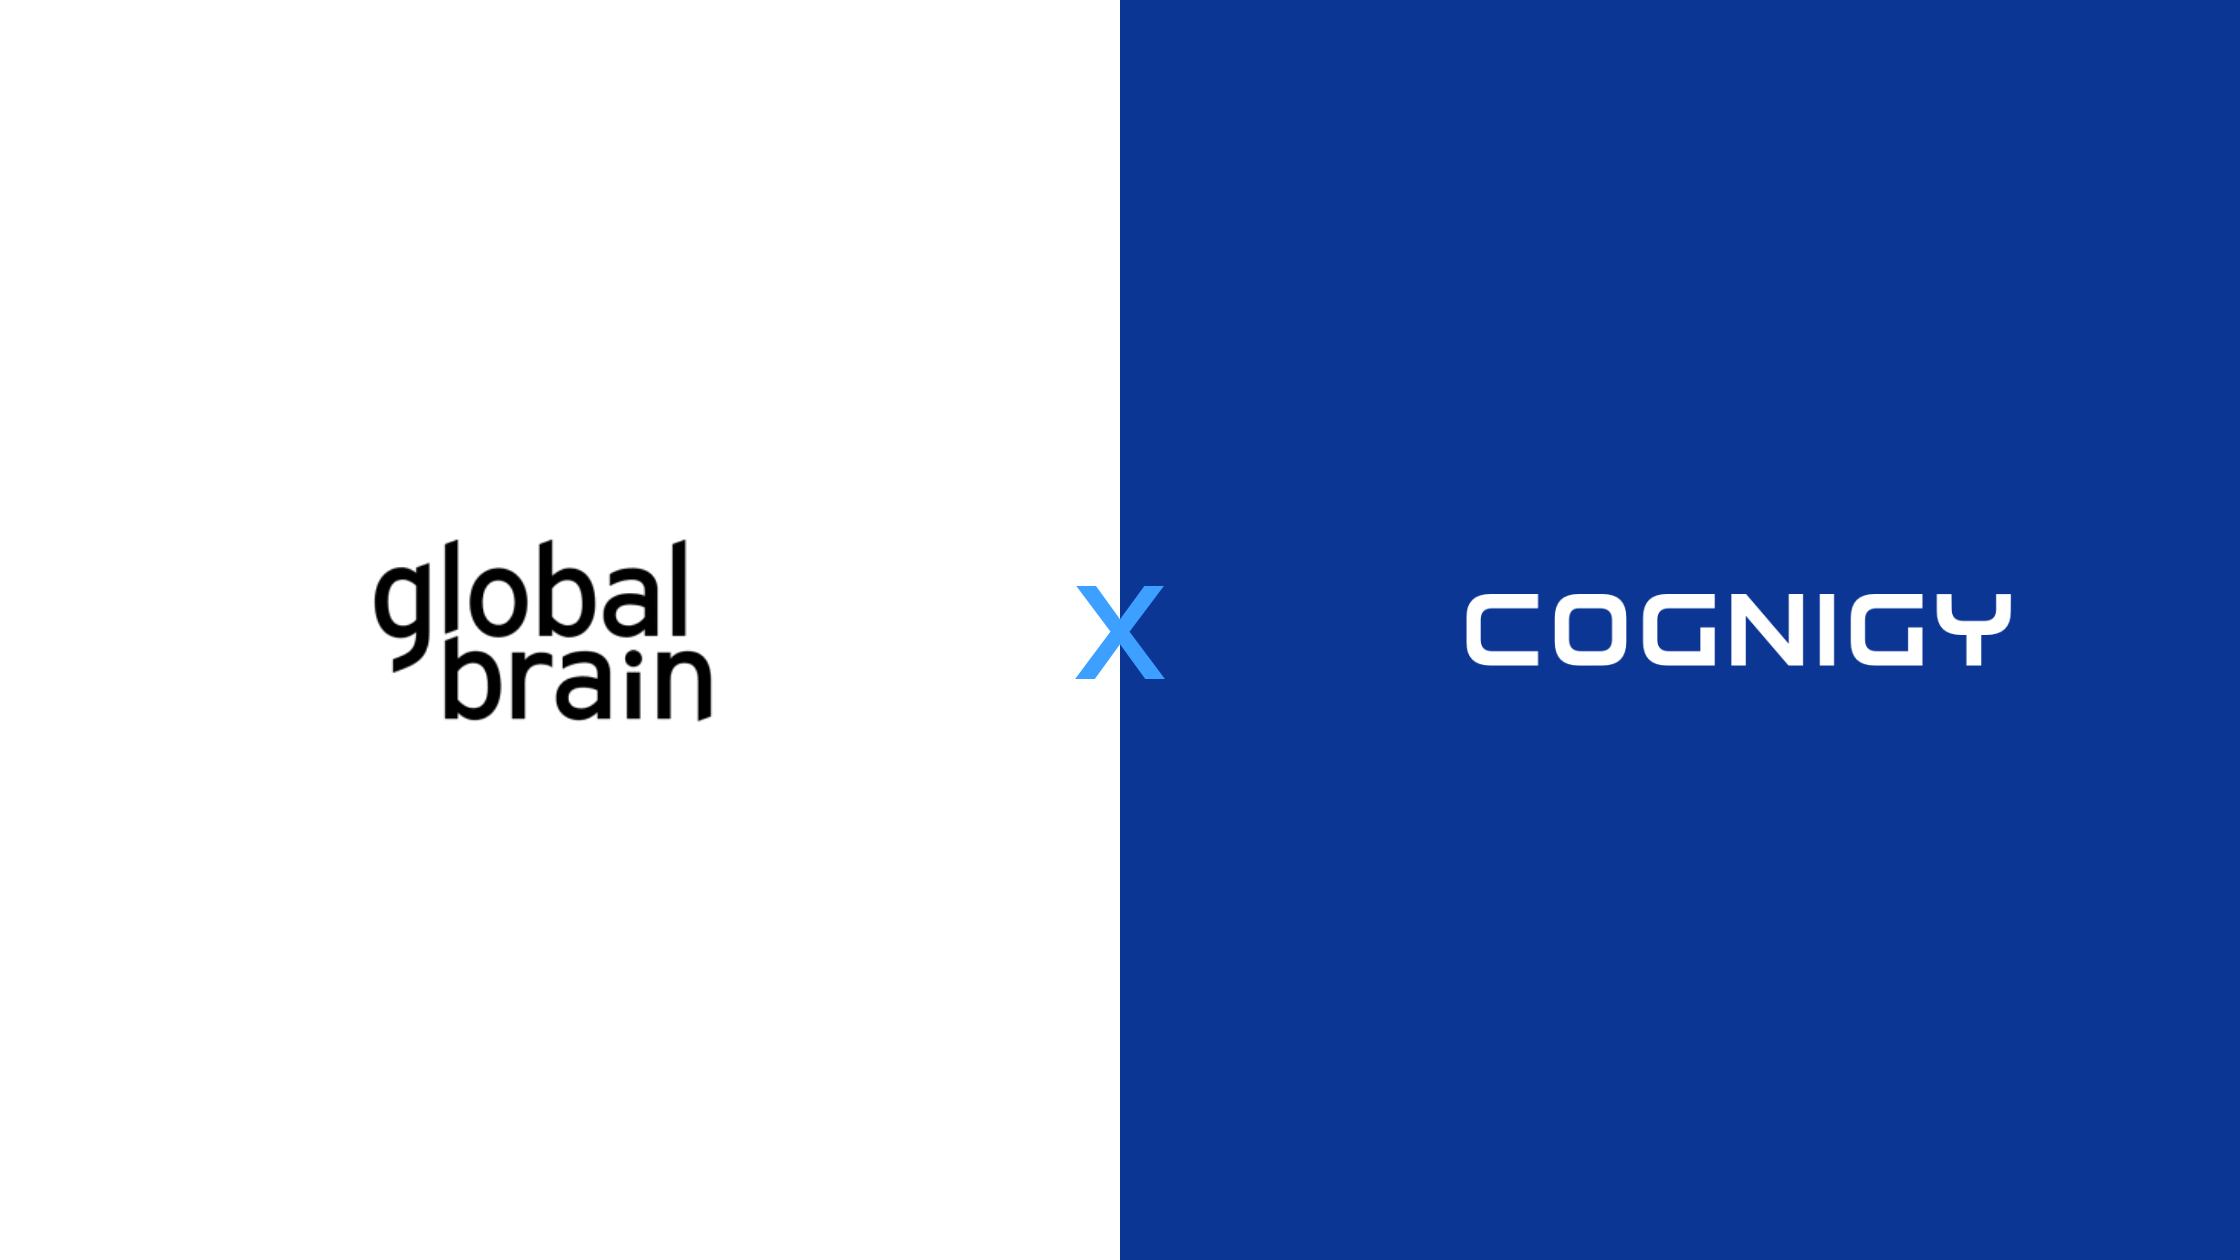 Cognigy secures funding from Global Brain